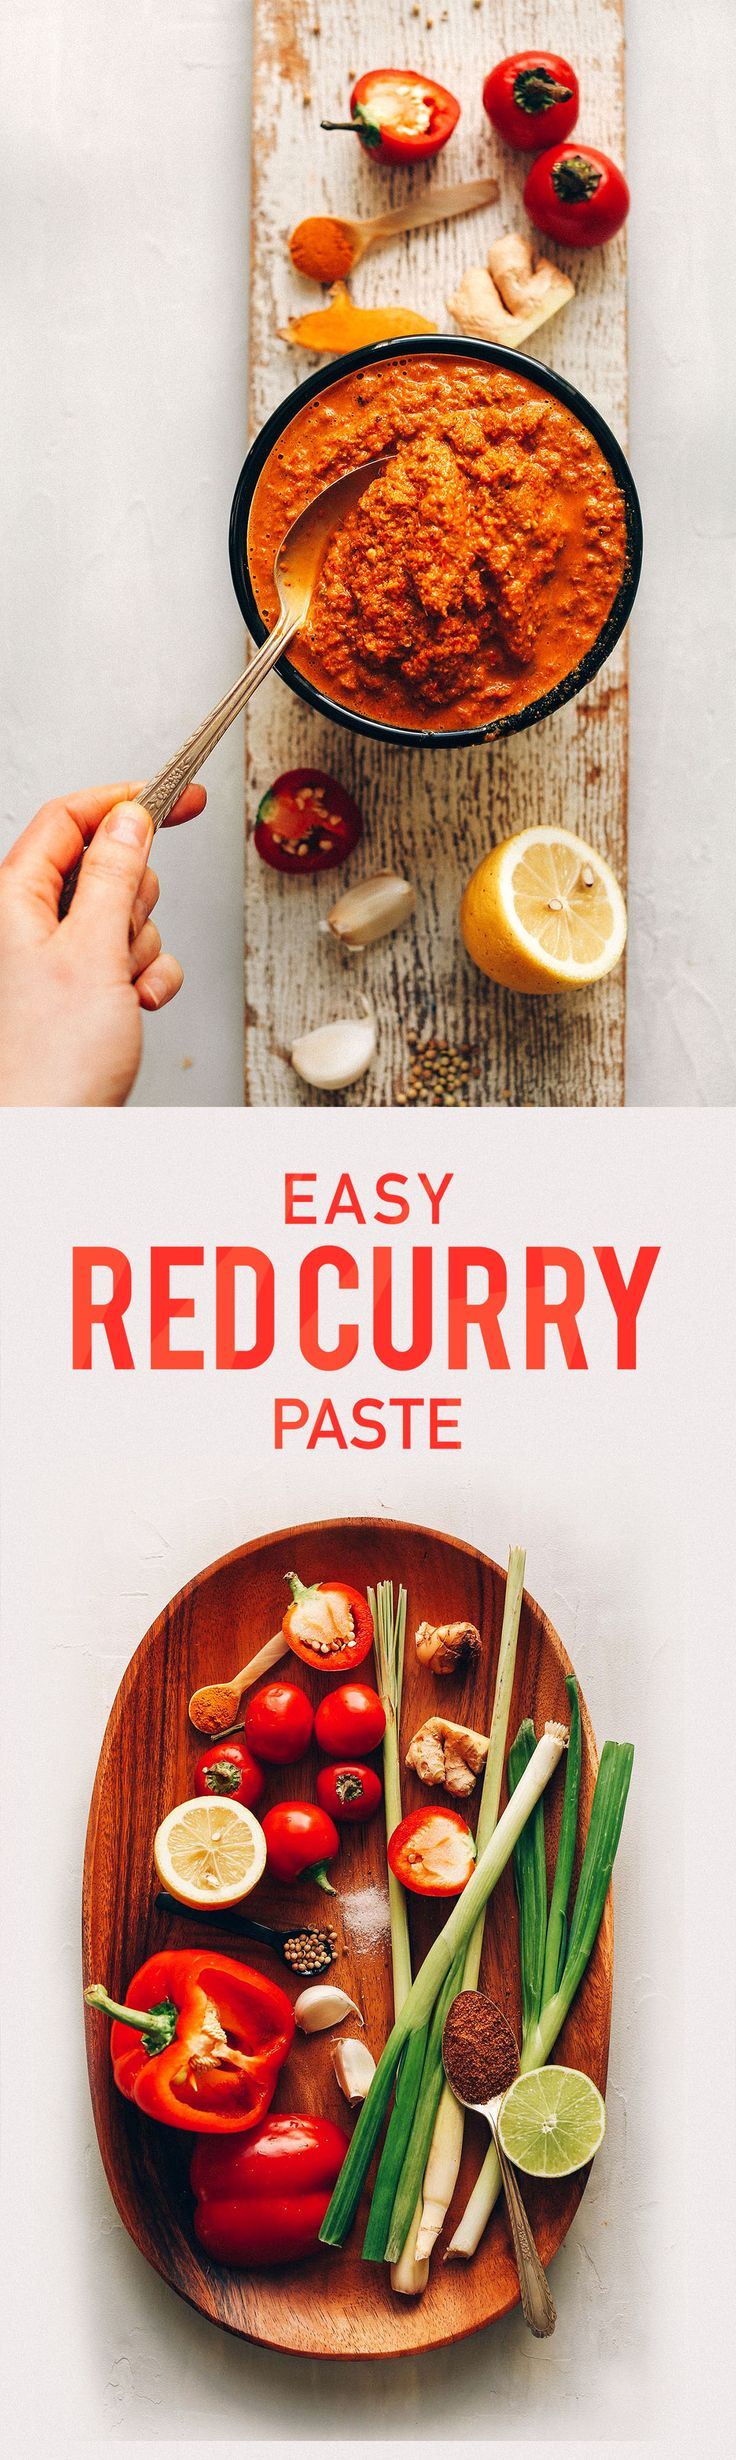 Easy Red Curry Paste (use dark green part of scallions; sub garlic-infused oil for garlic; sub honey for sweetener) / Minimalist Baker